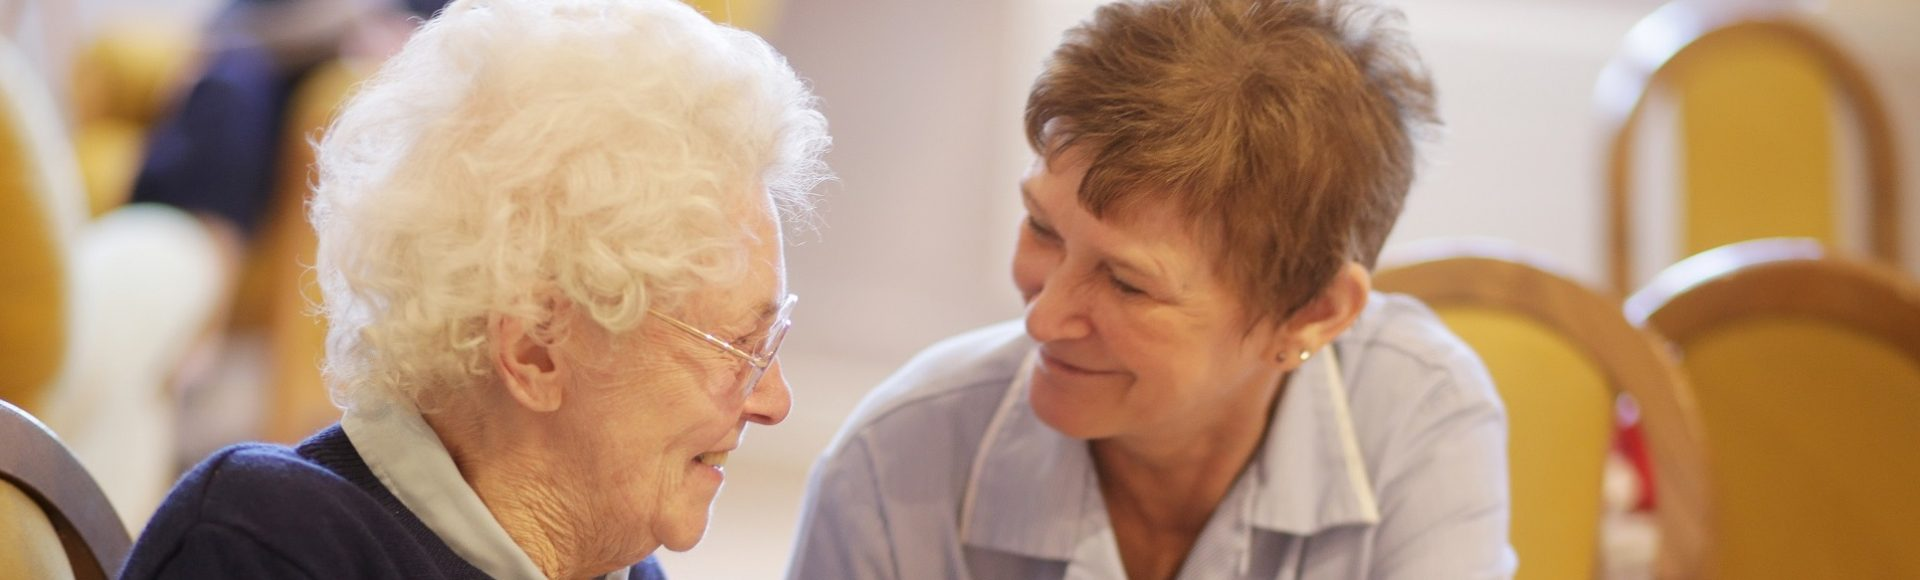 Improving care every day